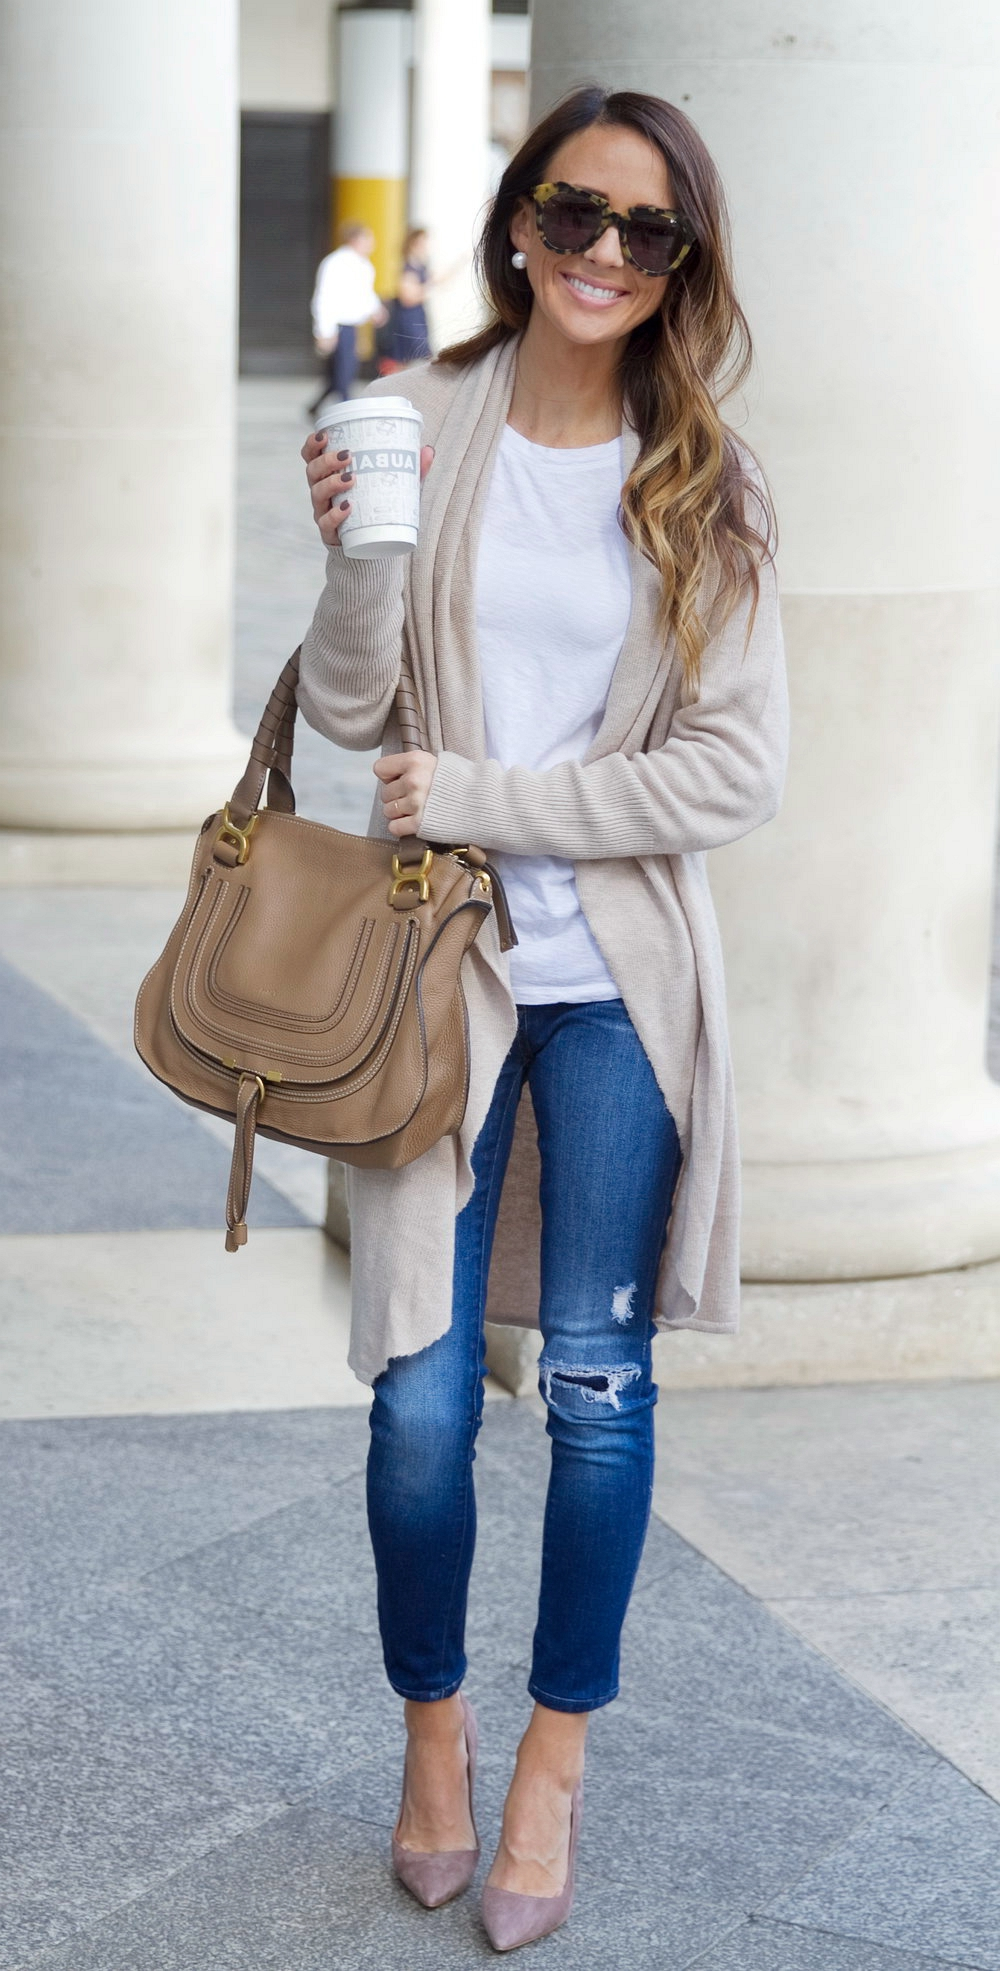 40 trending outfit ideas for women 2019 spring summer